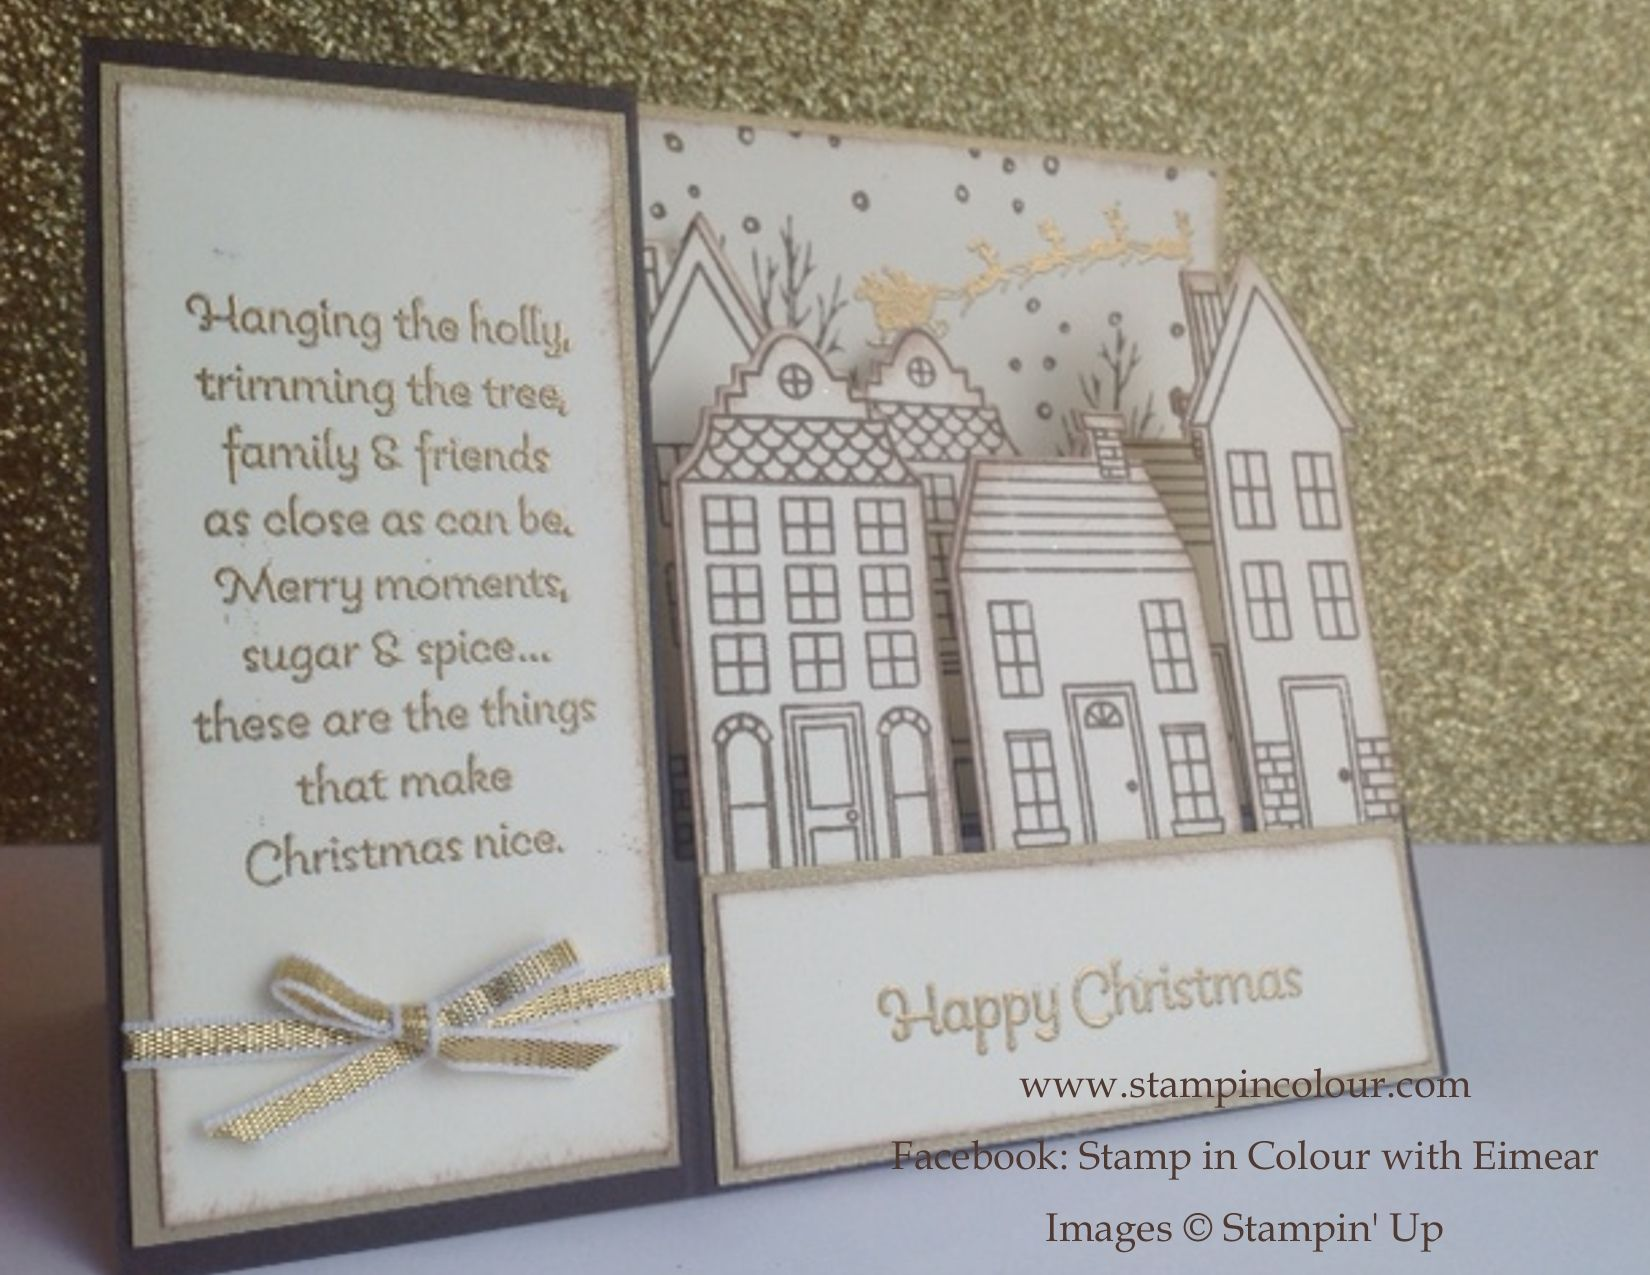 Stampin up stair step card holiday home early espresso 001 stampin up christmas card ideas with white christmas holiday home and stair step cards kristyandbryce Gallery